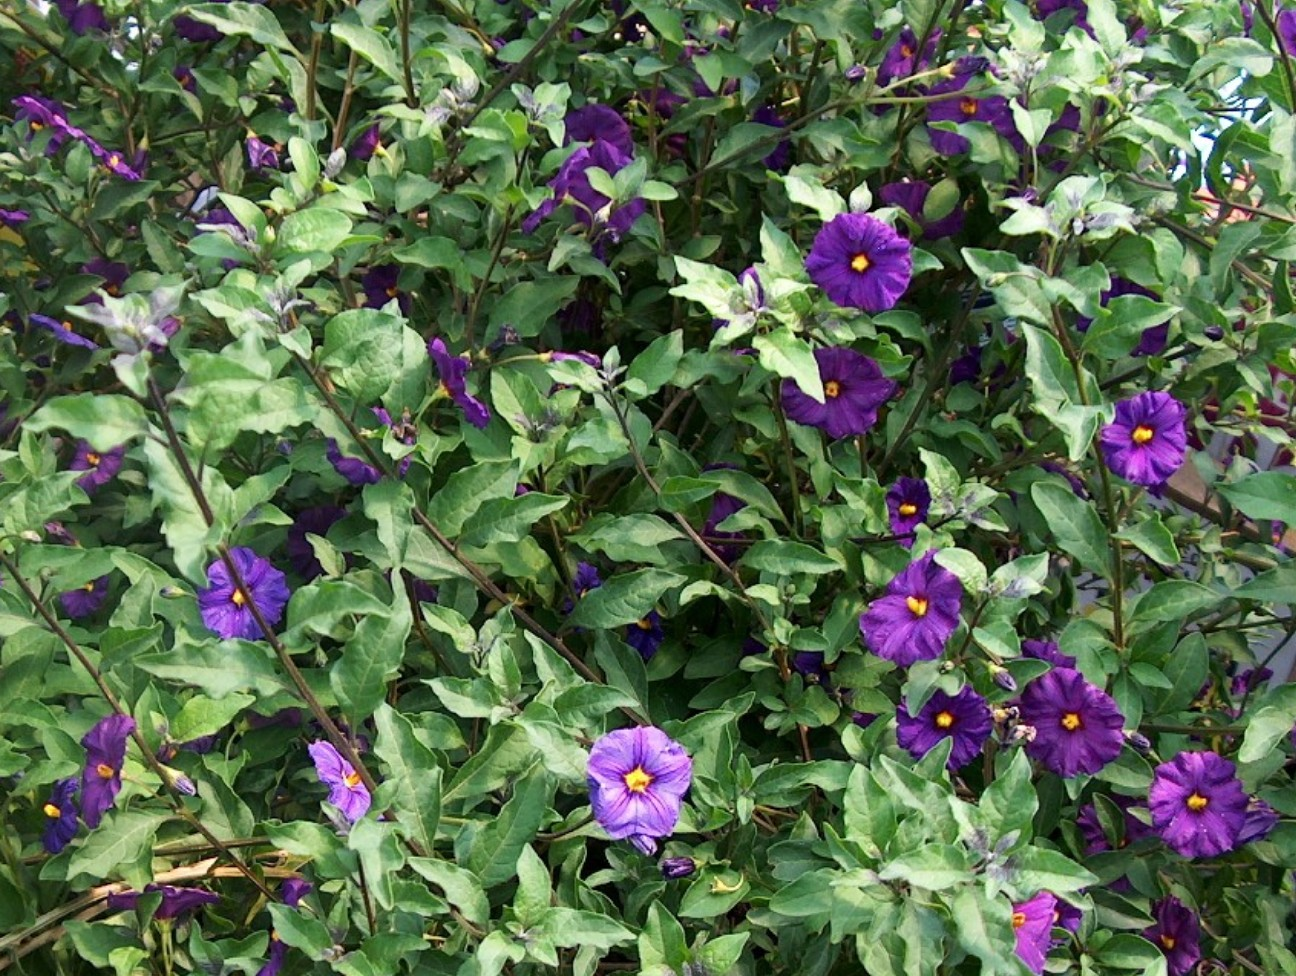 Online plant guide lycianthes rantonnetii royal robe blue lycianthes rantonnetii royal robe lycianthes rantonnetii royal robe attractive purple flowers and foliage mightylinksfo